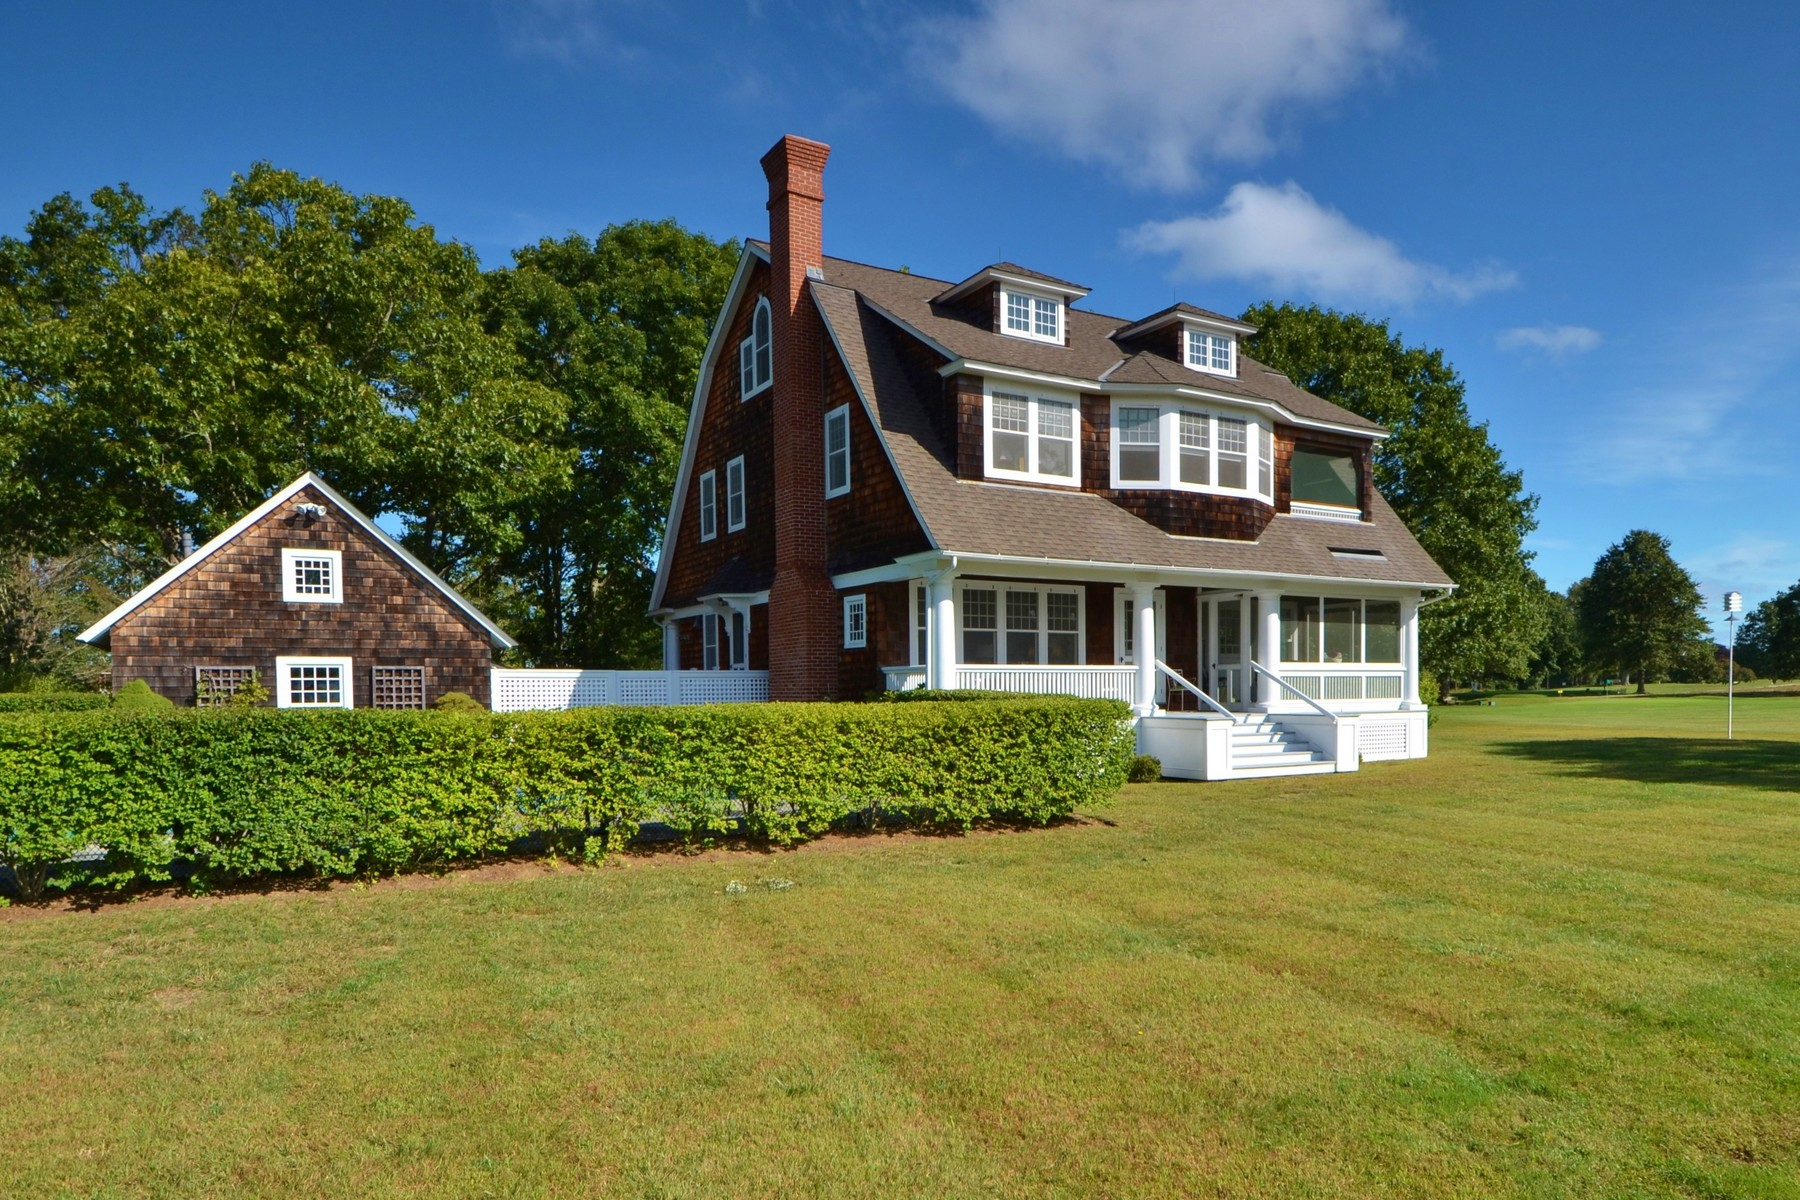 Maison unifamiliale pour l Vente à Fenwick Gem First Time on the Market 549 Maple Ave Old Saybrook, Connecticut, 06475 États-Unis